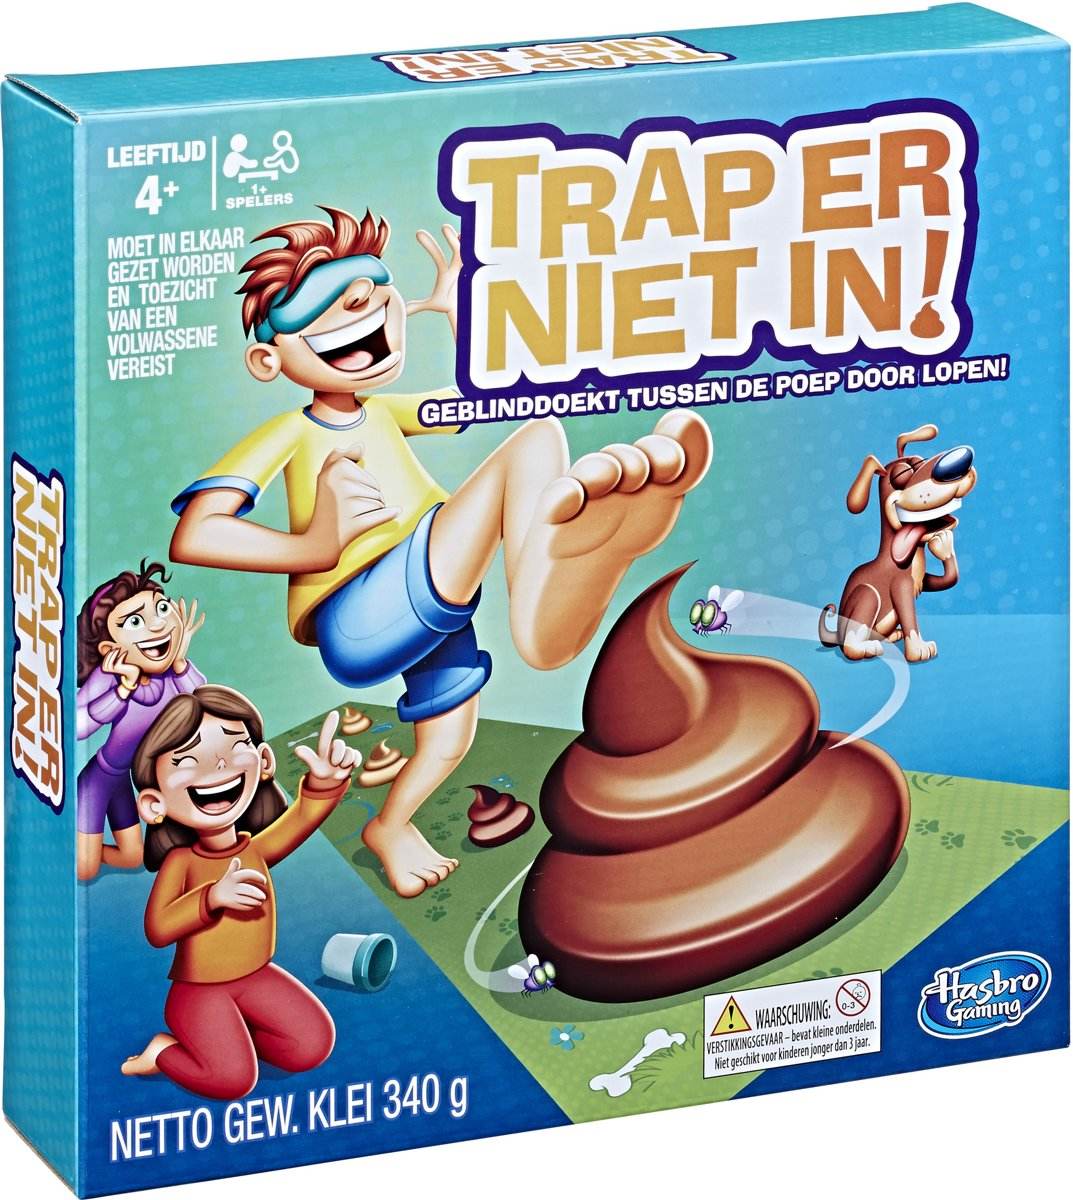 Trap er niet in! - Kinderspel